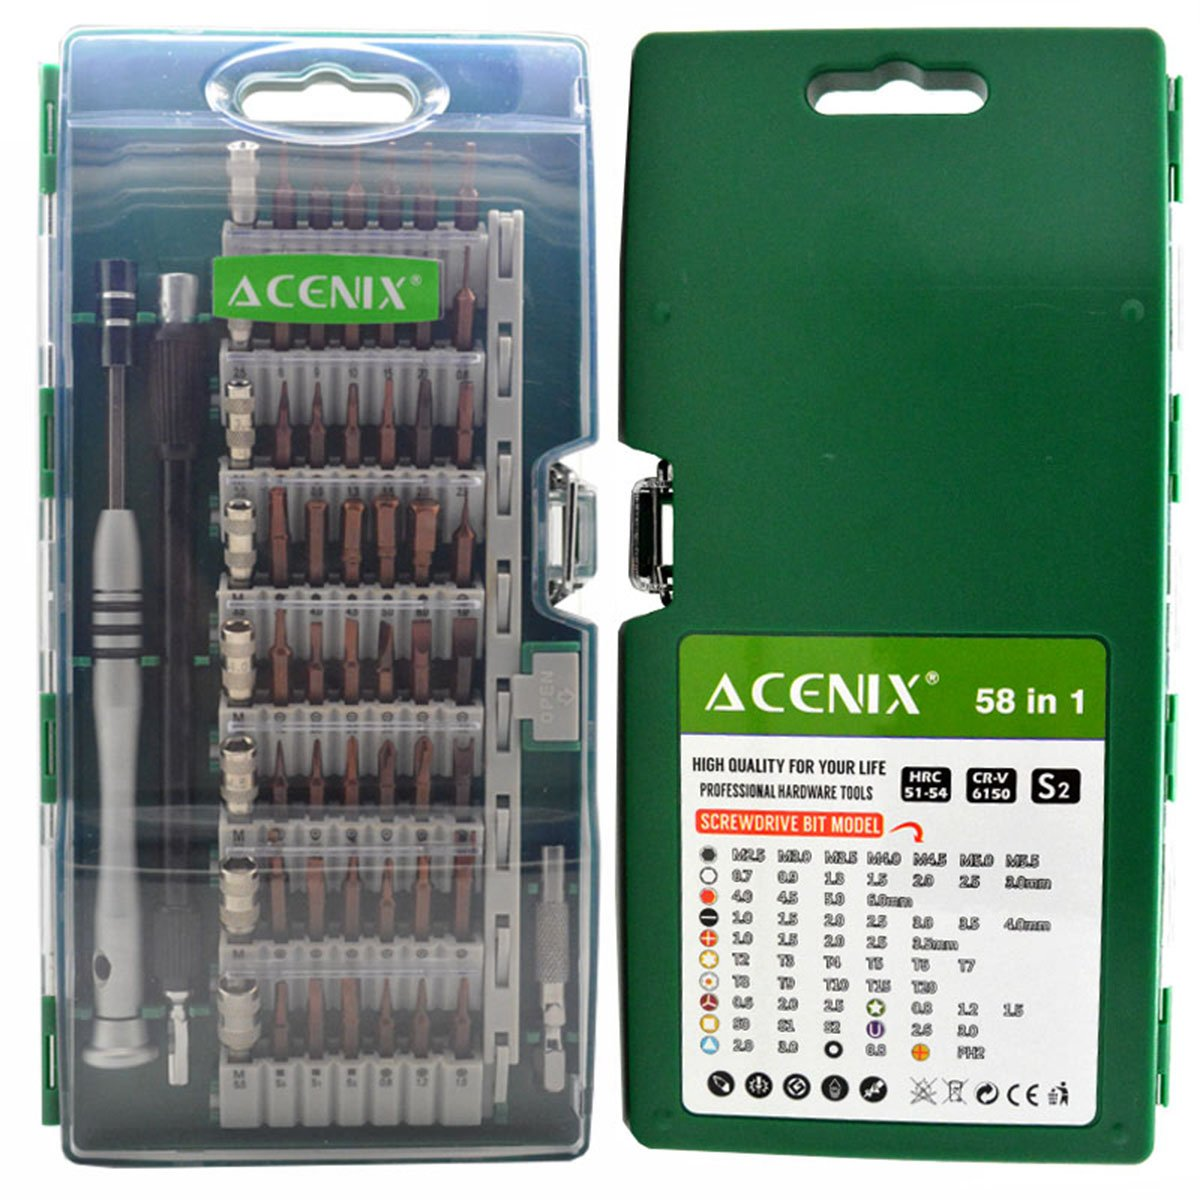 ACENIX New 60 Pcs Professional Tools Set Screwdriver Set Repair Tool Kit Fix iPhone Samsung Laptop Smartphone MacBook Xbox Electronics Torx Diver Set Ipad Tablet Cameras Electronic Toys by ACENIX® (Image #6)